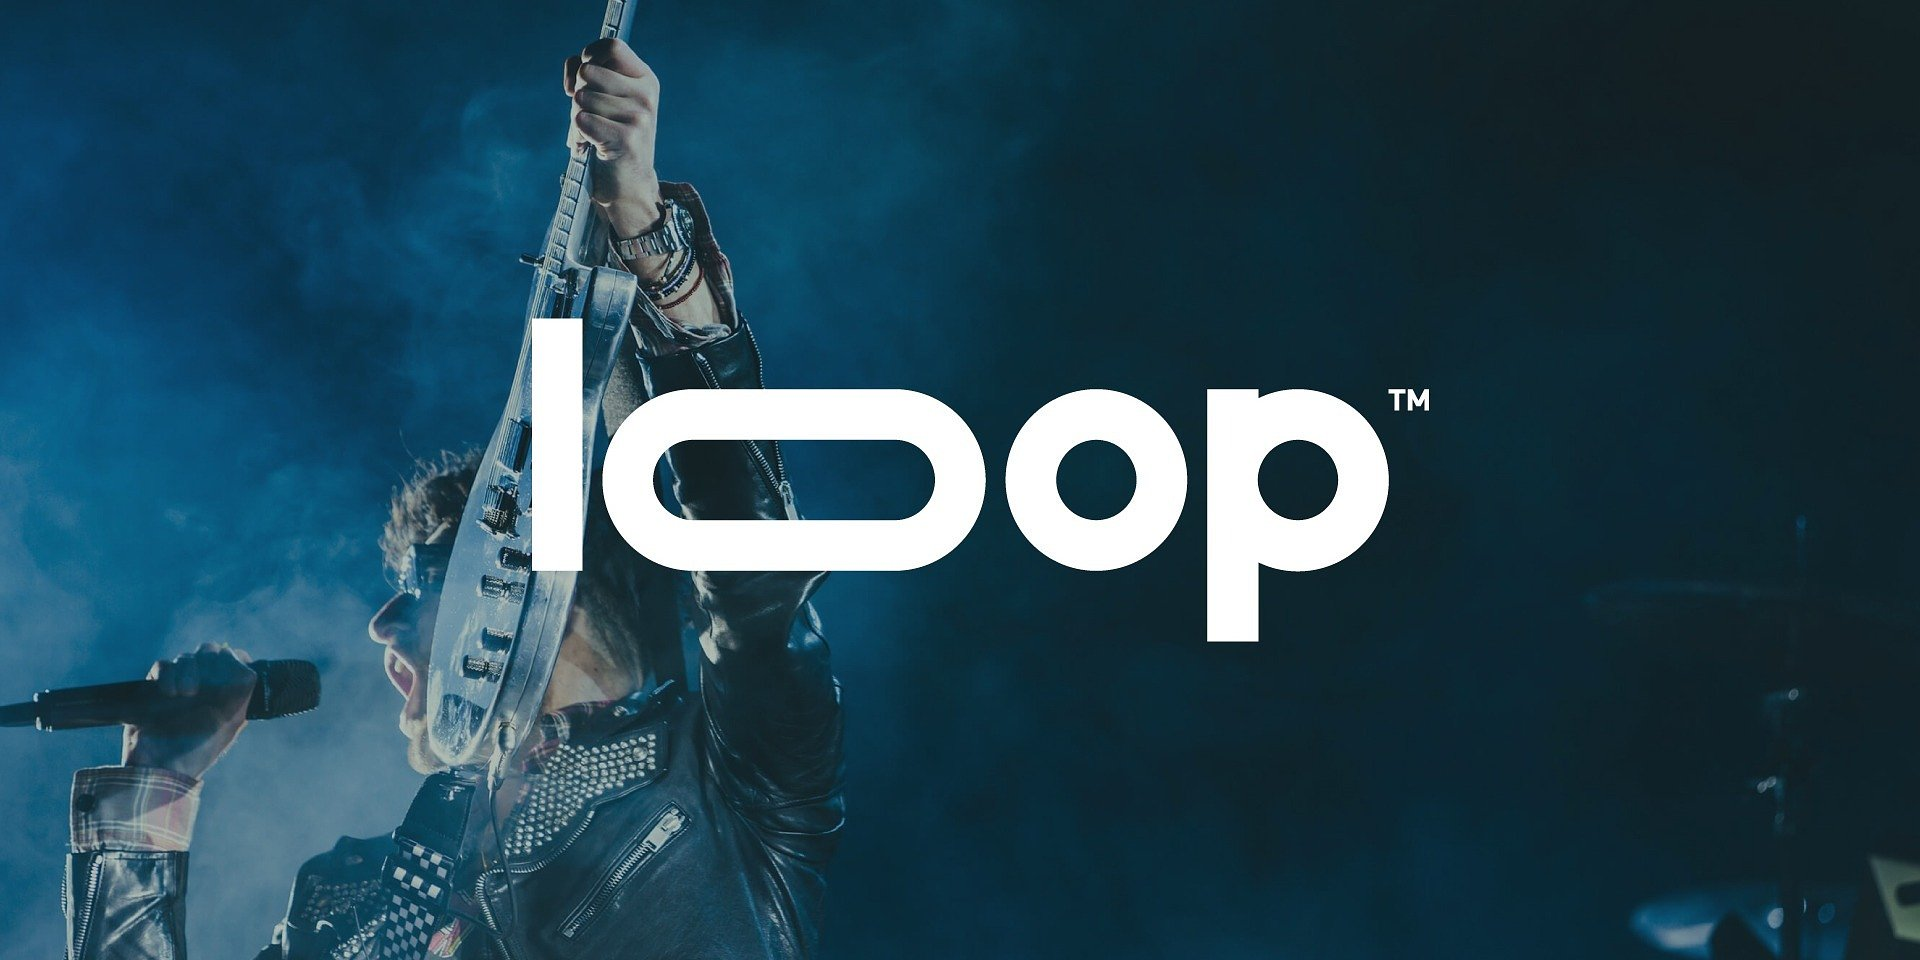 Loop Media, Inc. Announces Virtual Music Festival in Collaboration with Twitch Benefiting MusiCares